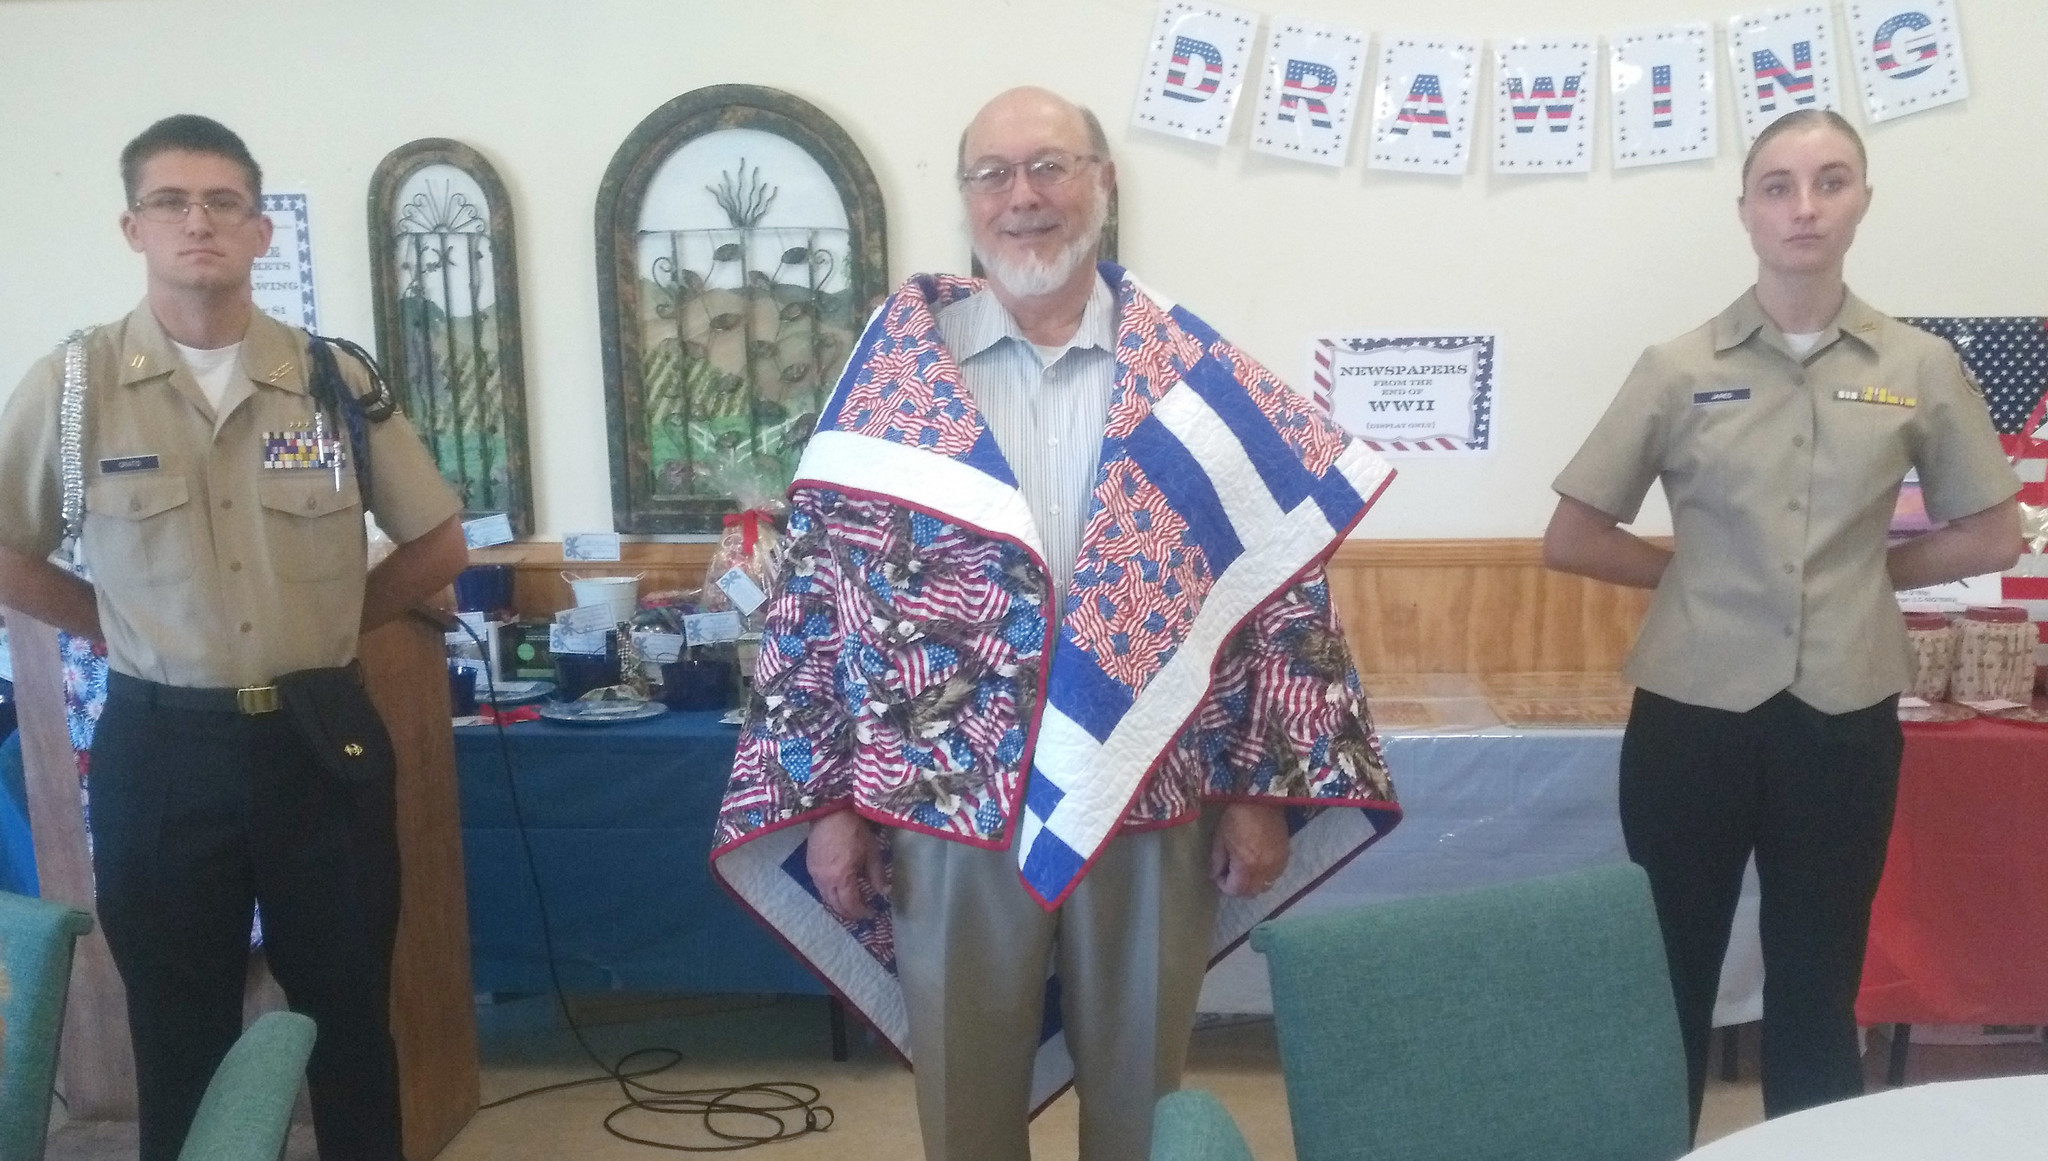 U.S. Navy Vietnam War veteran Steven Edward Breight is draped in a quilt created by the Rancho Bernardo chapter of Quilts of Valor Foundation to honor his military service.